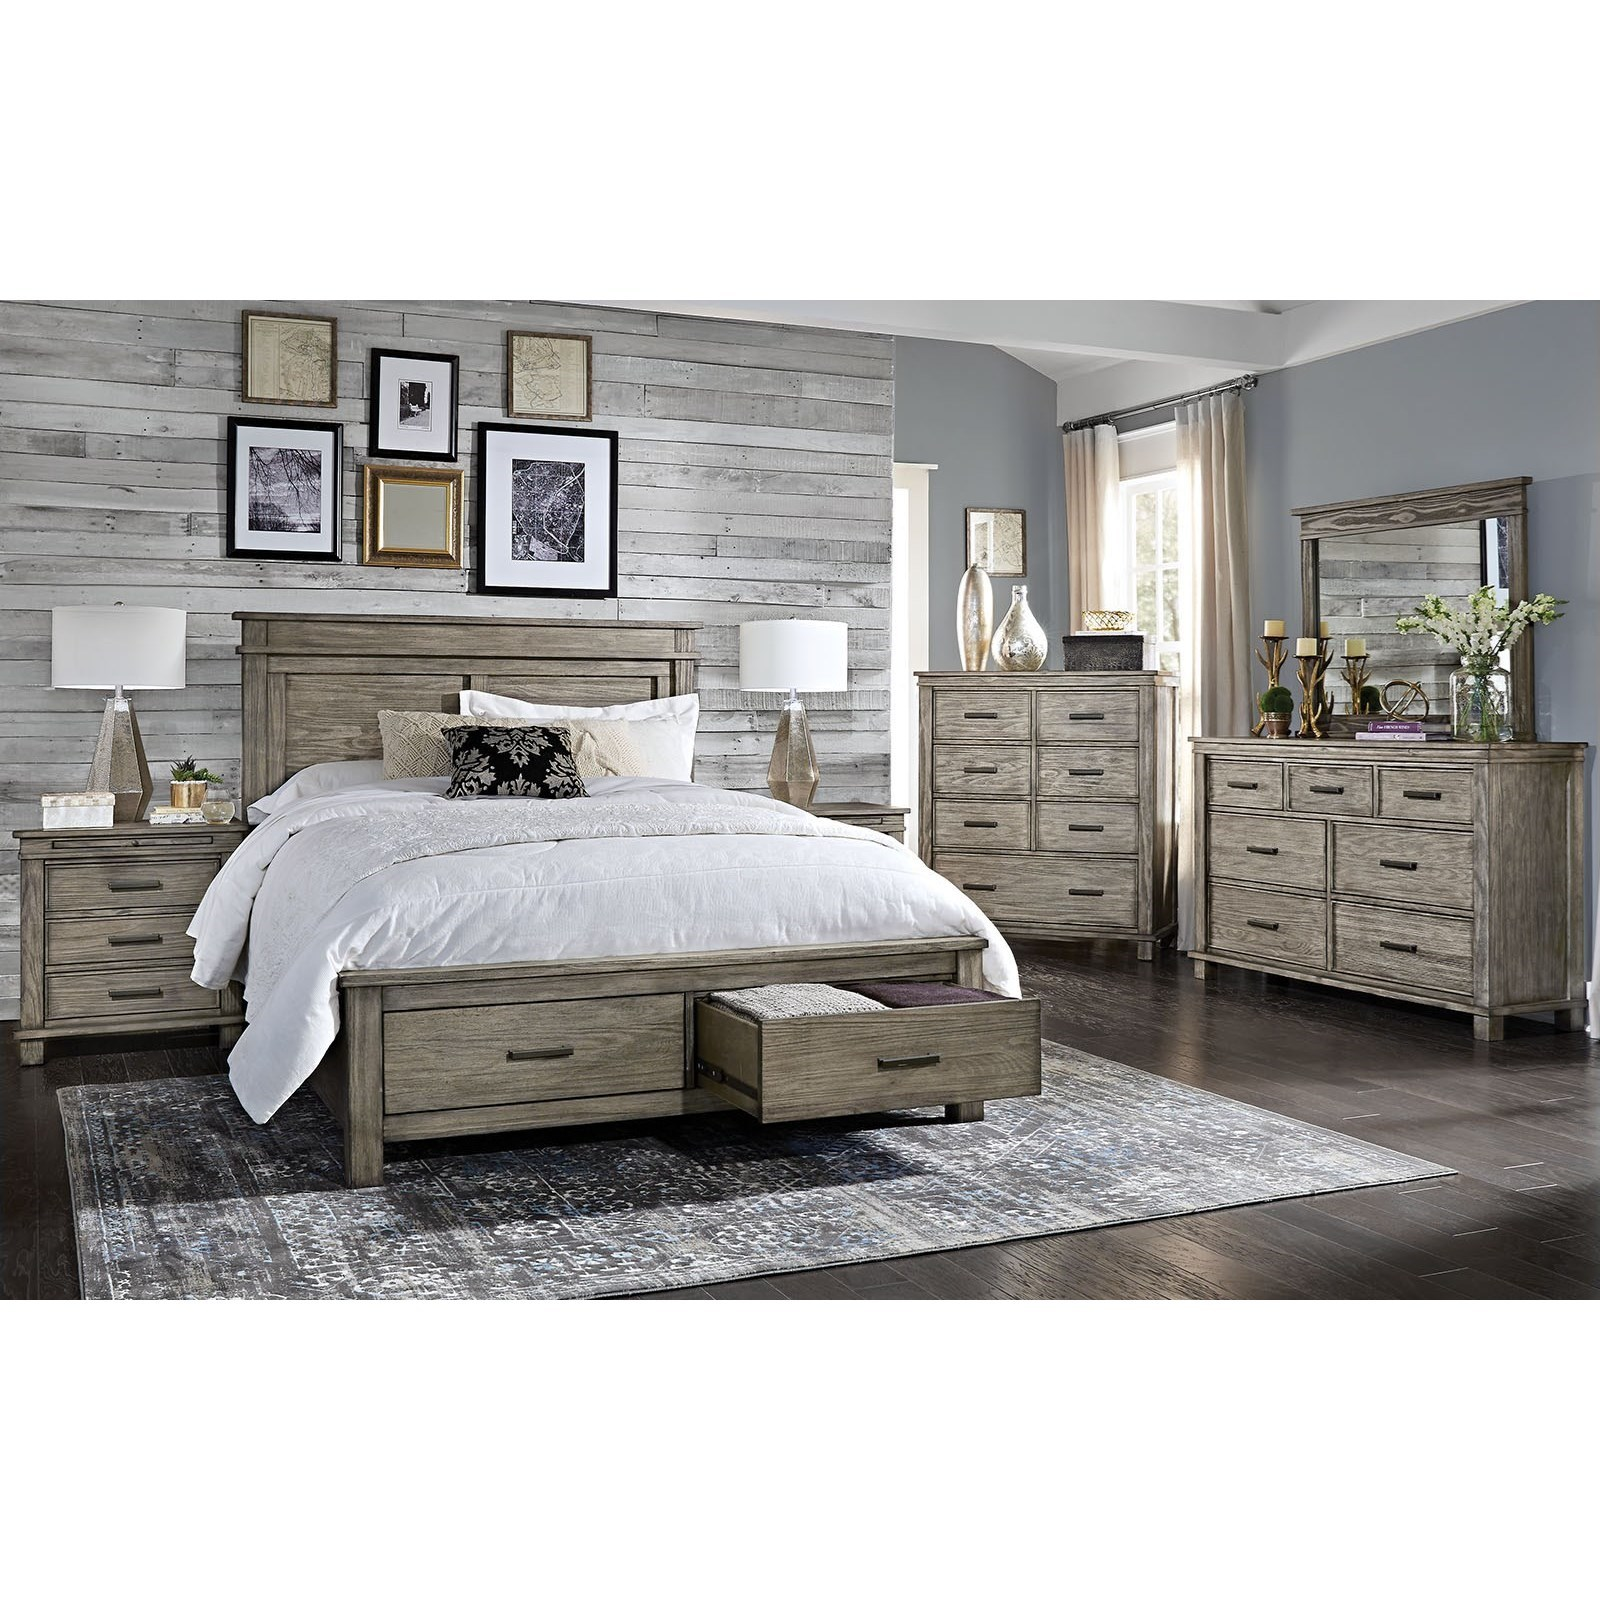 Glacier Point Cal King Storage Bedroom Group by A-A at Walker's Furniture